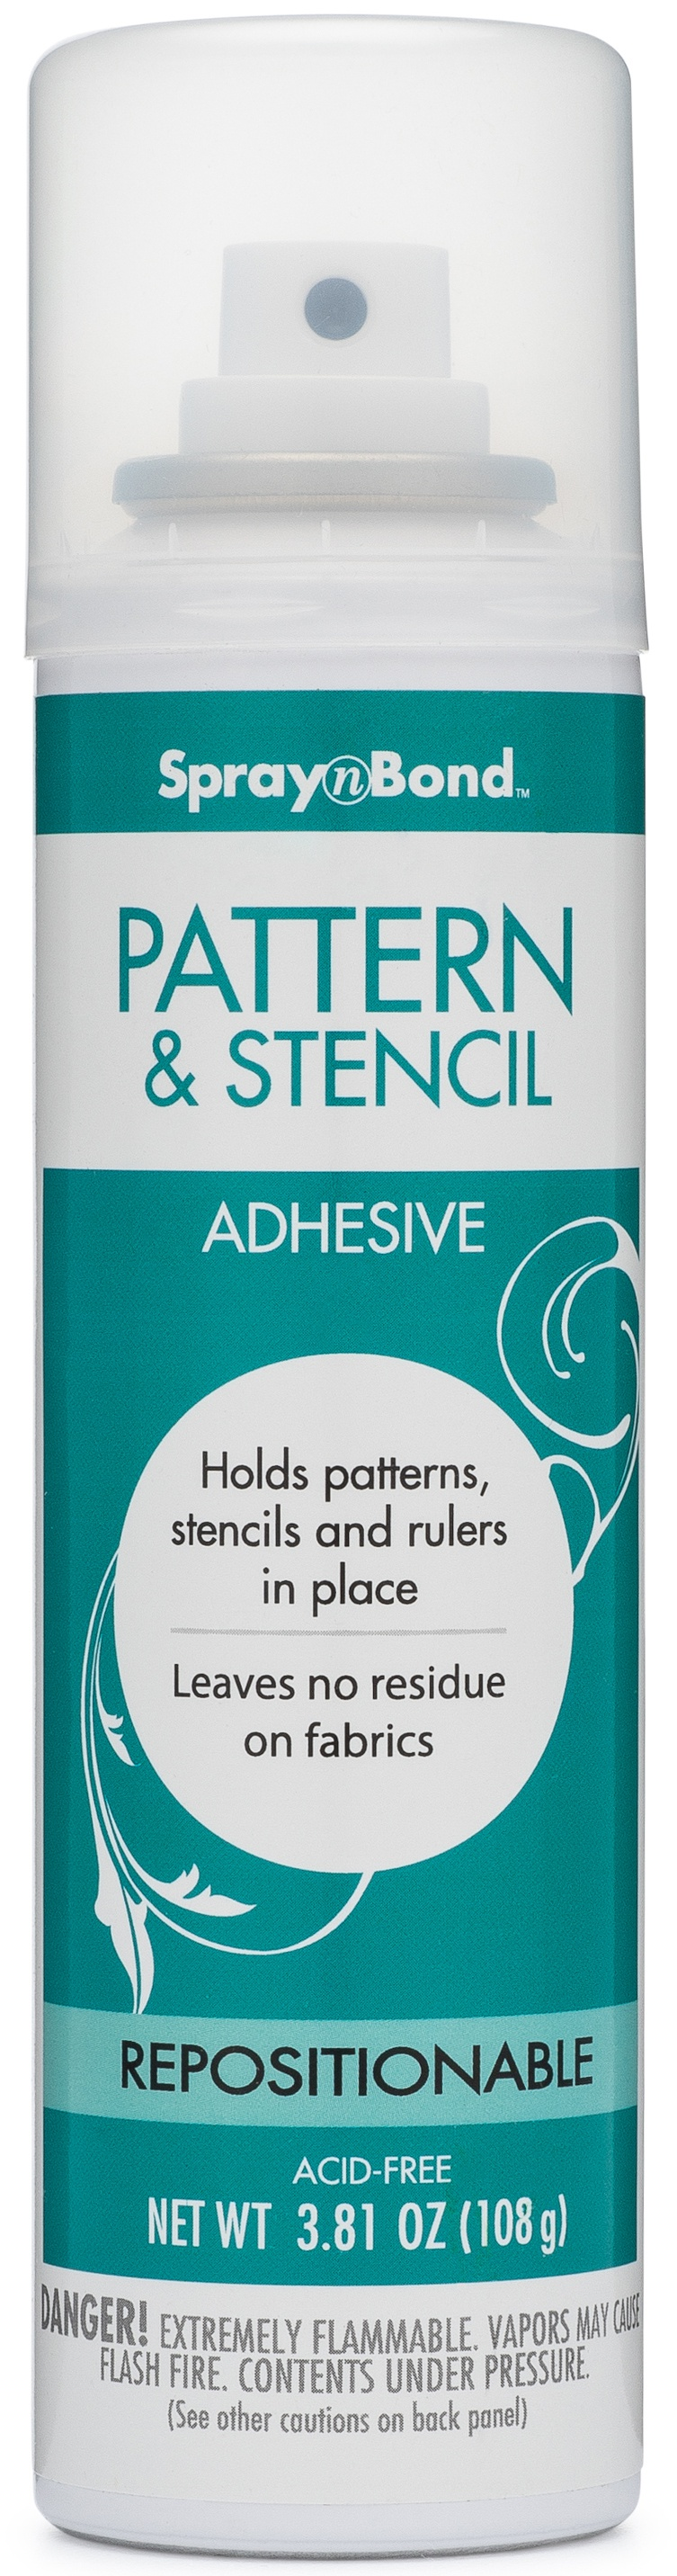 Therm O Web Spray N Bond Pattern & Stencil Repositionable Adhesive ? Adh?sif repositionnable pour patrons et pochoirs